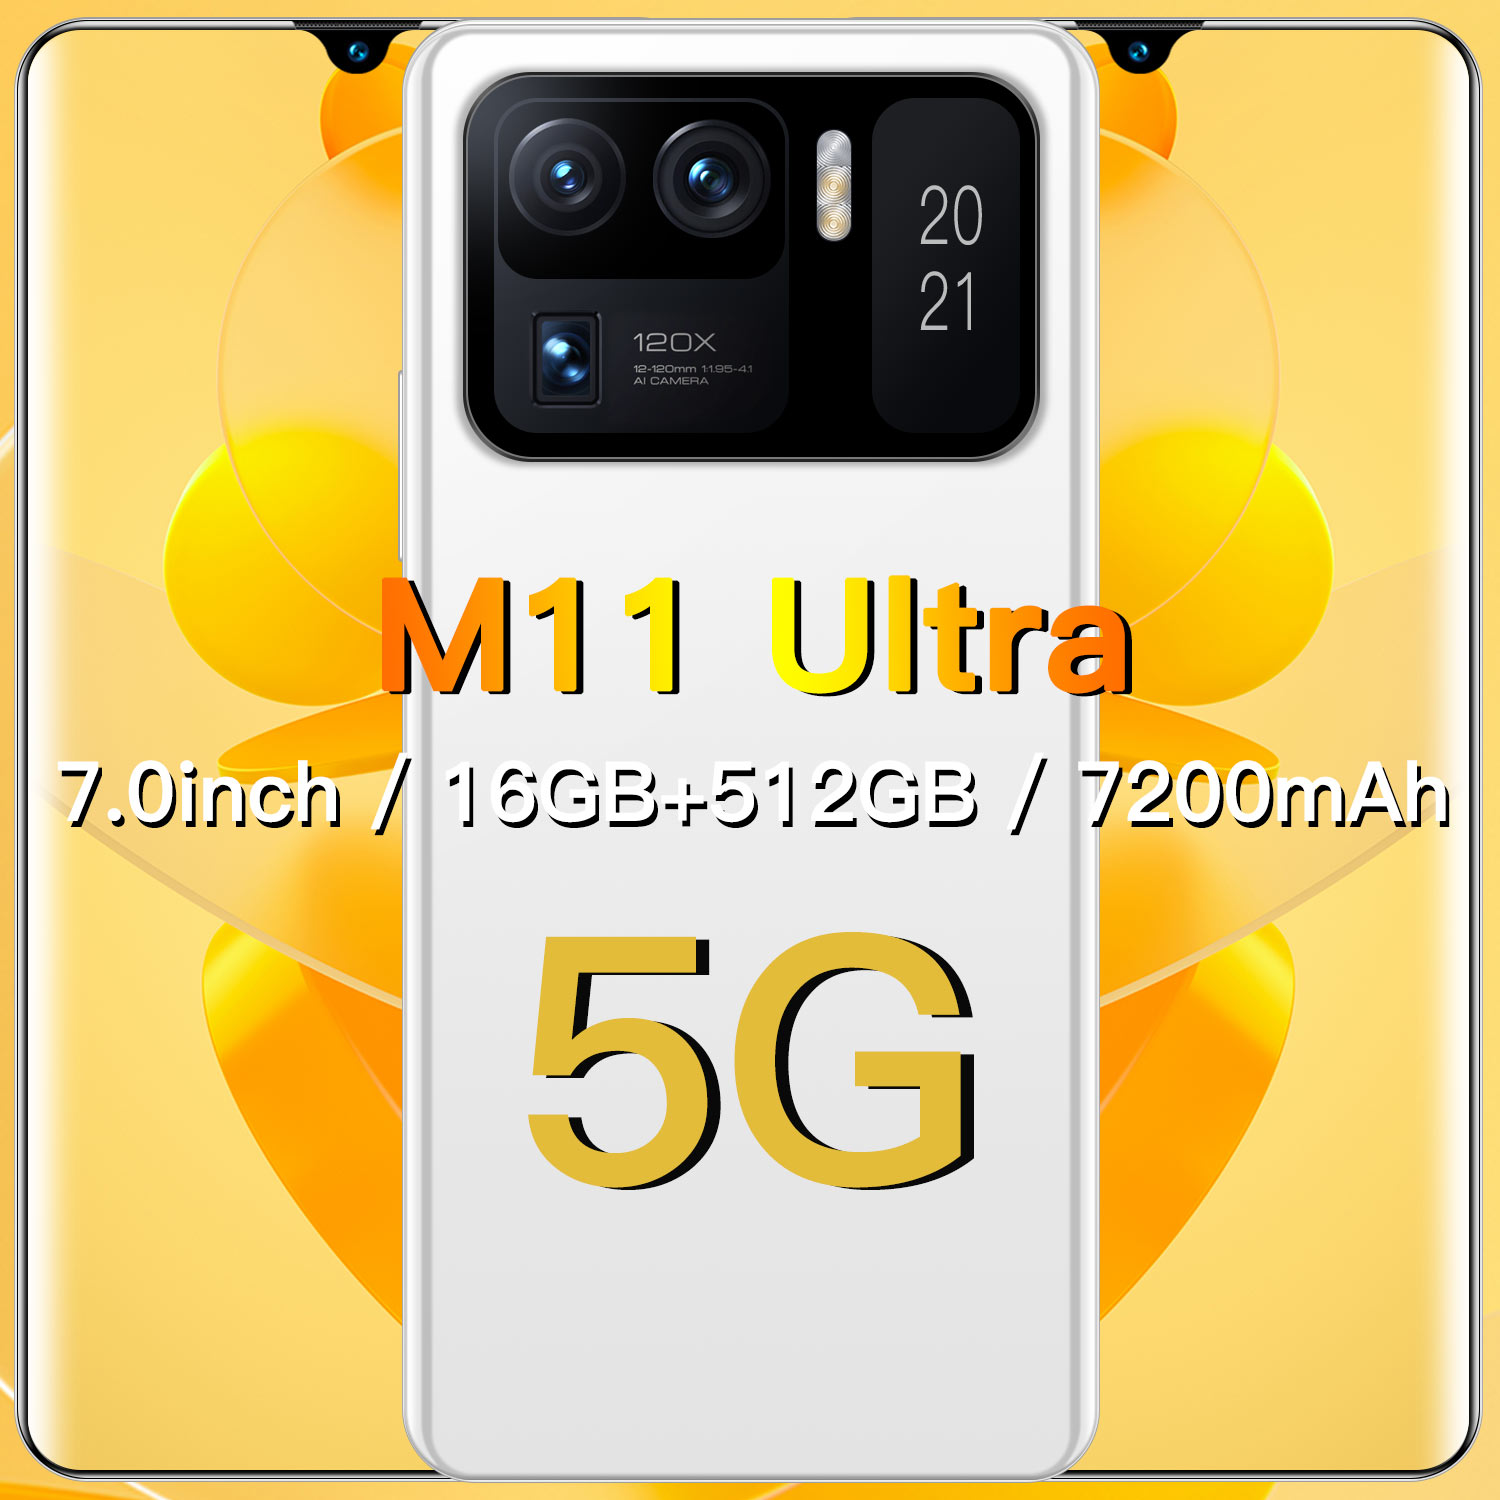 2021 New Smartpone M11 Ultra Global Version Smartphonr 16G 512G Android10 7200mAh Snapdragon 888 Fac